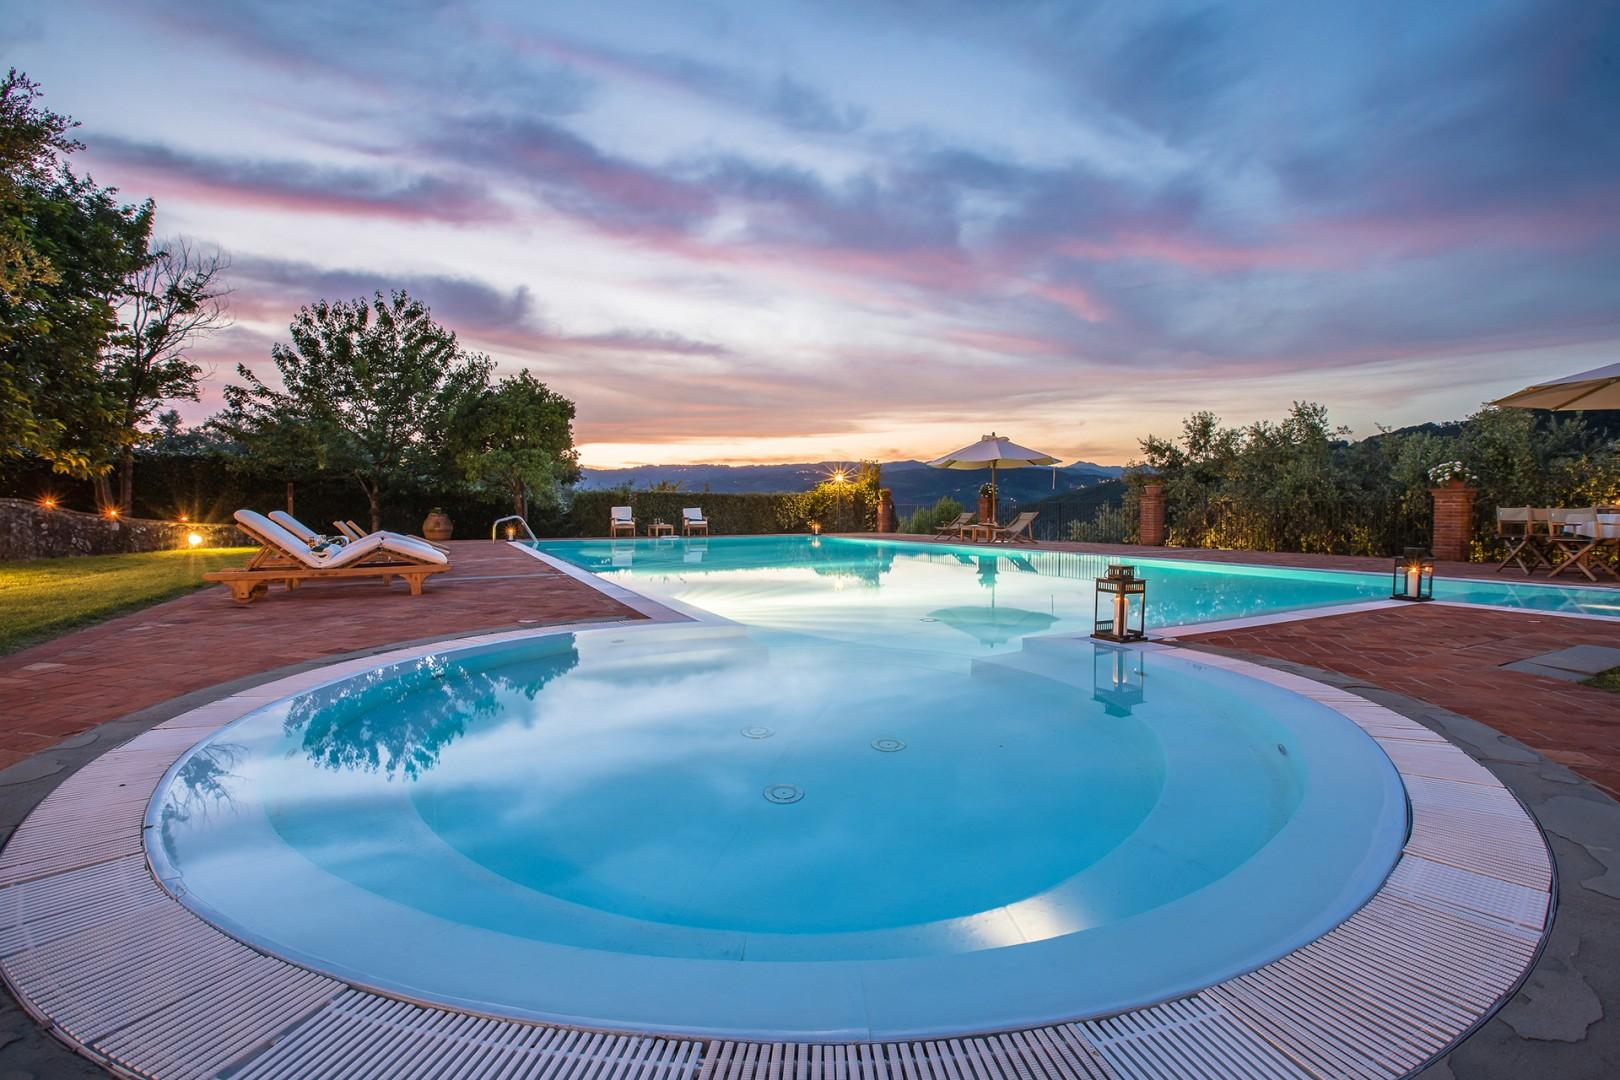 Summertime and the living is easy with this beautiful pool.